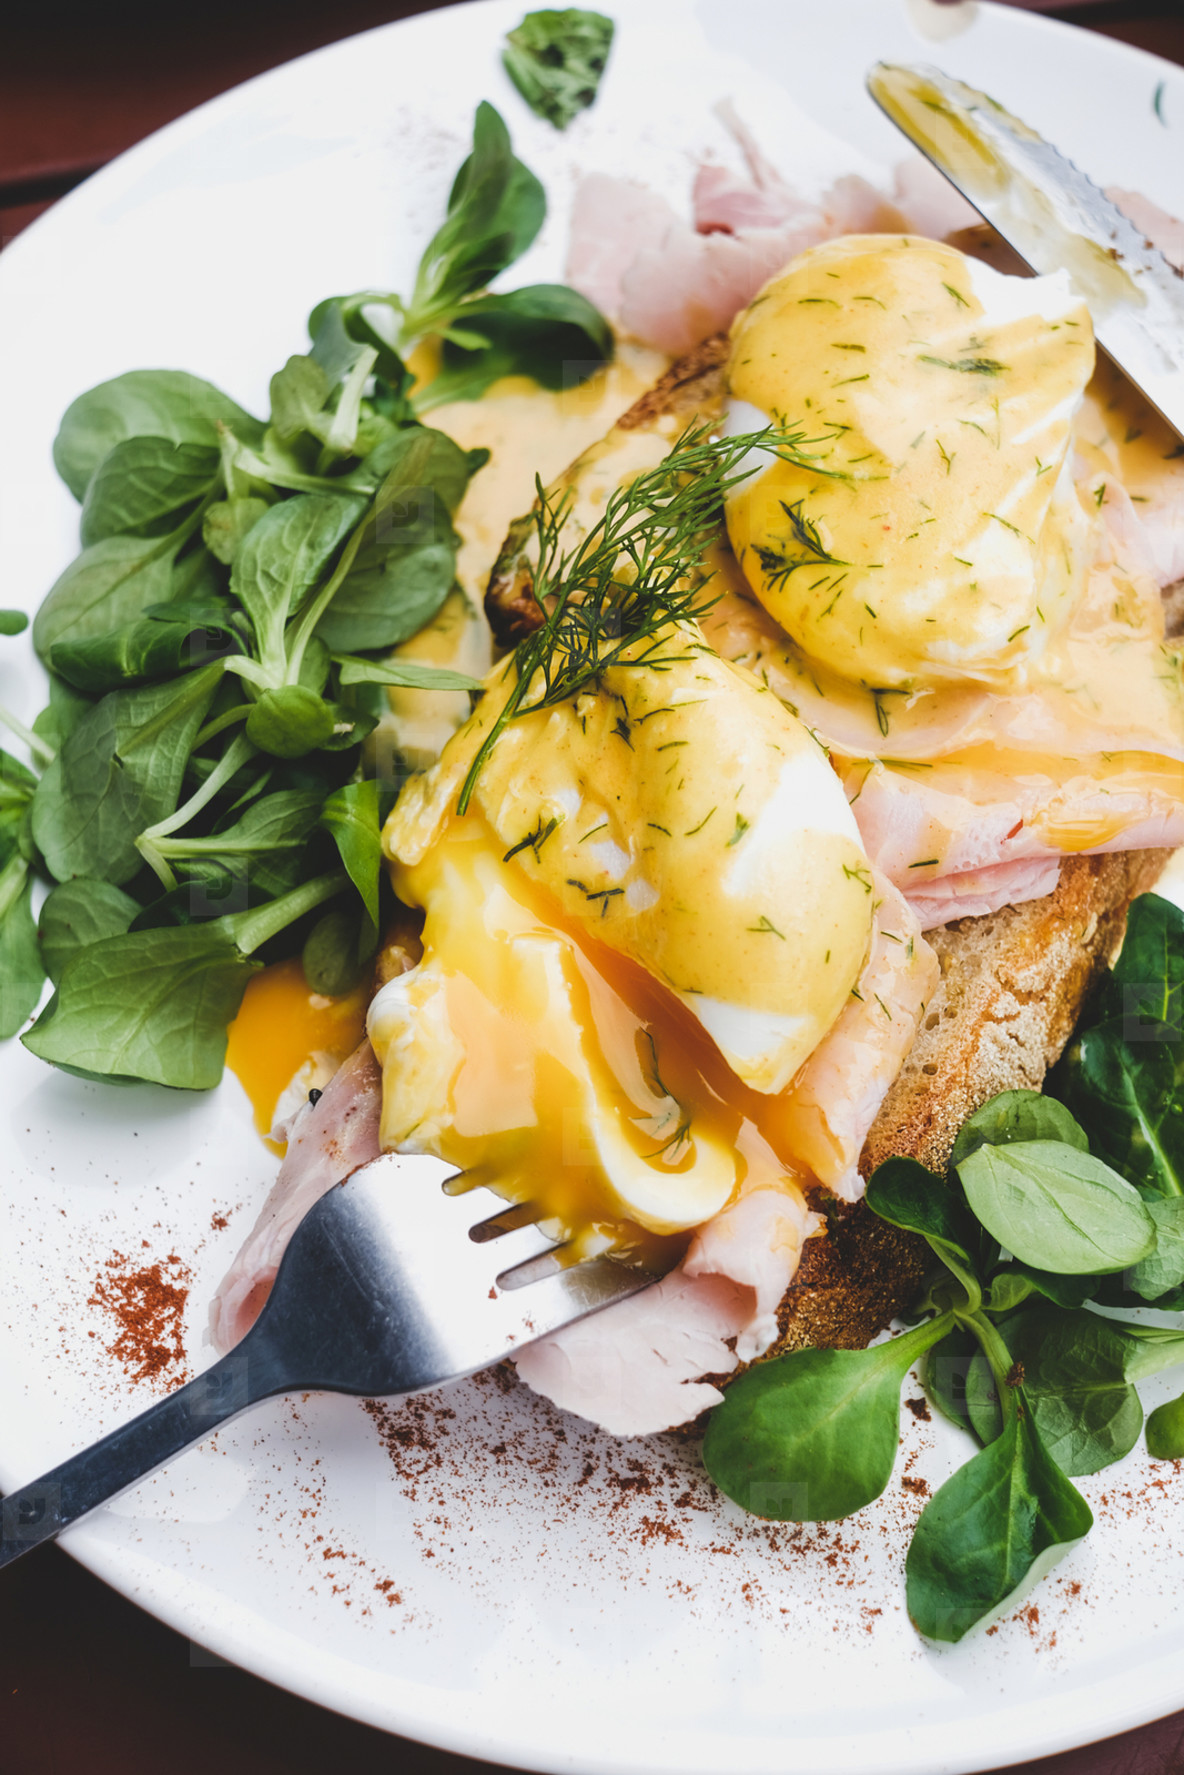 Poached eggs on sourdough bread with ham and salad